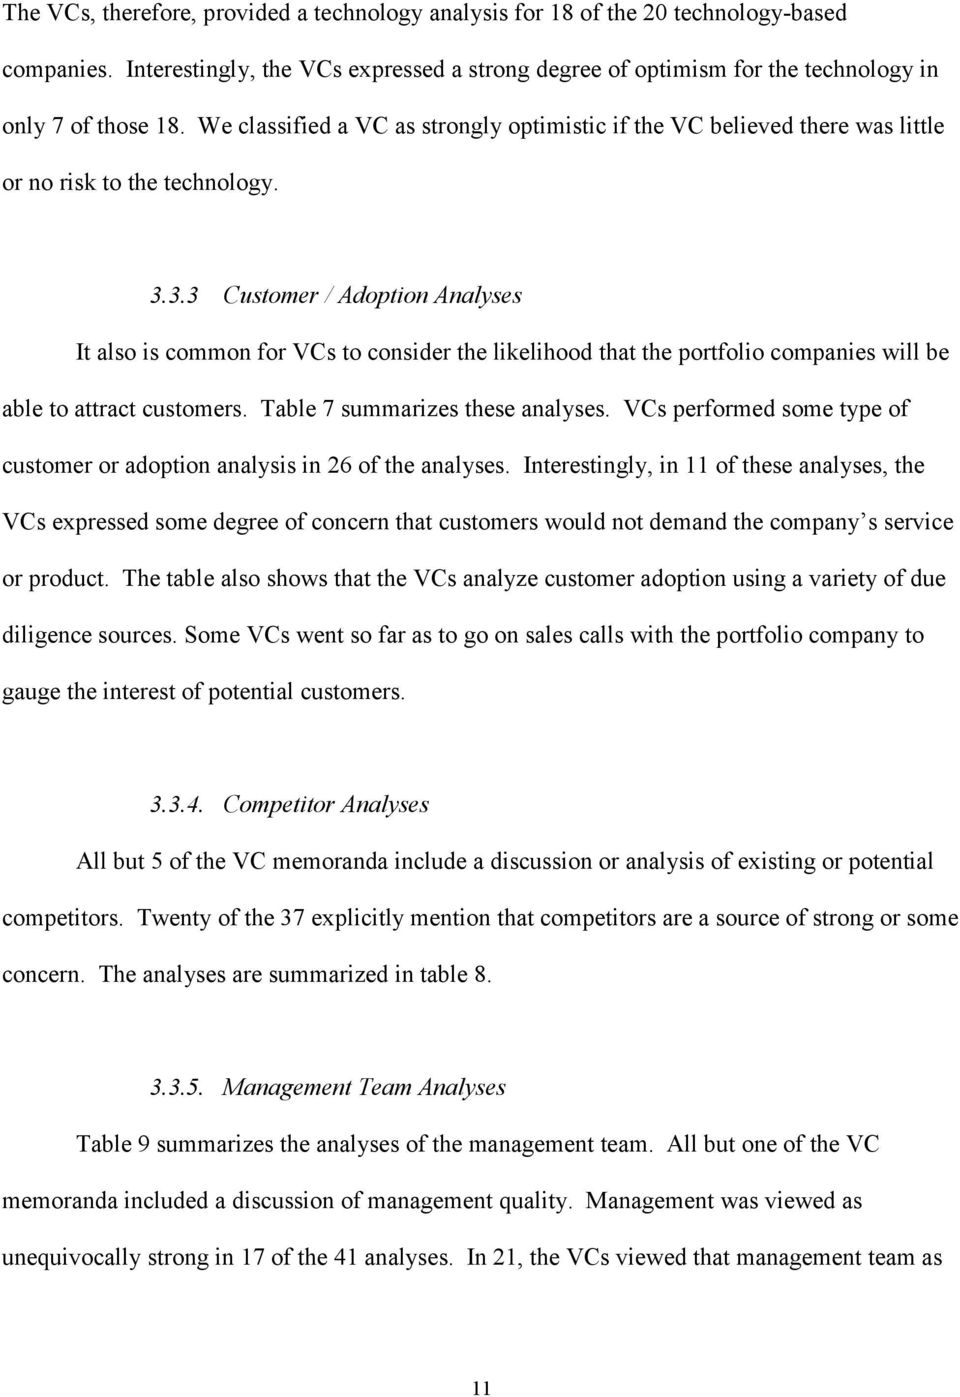 3.3 Customer / Adoption Analyses It also is common for VCs to consider the likelihood that the portfolio companies will be able to attract customers. Table 7 summarizes these analyses.